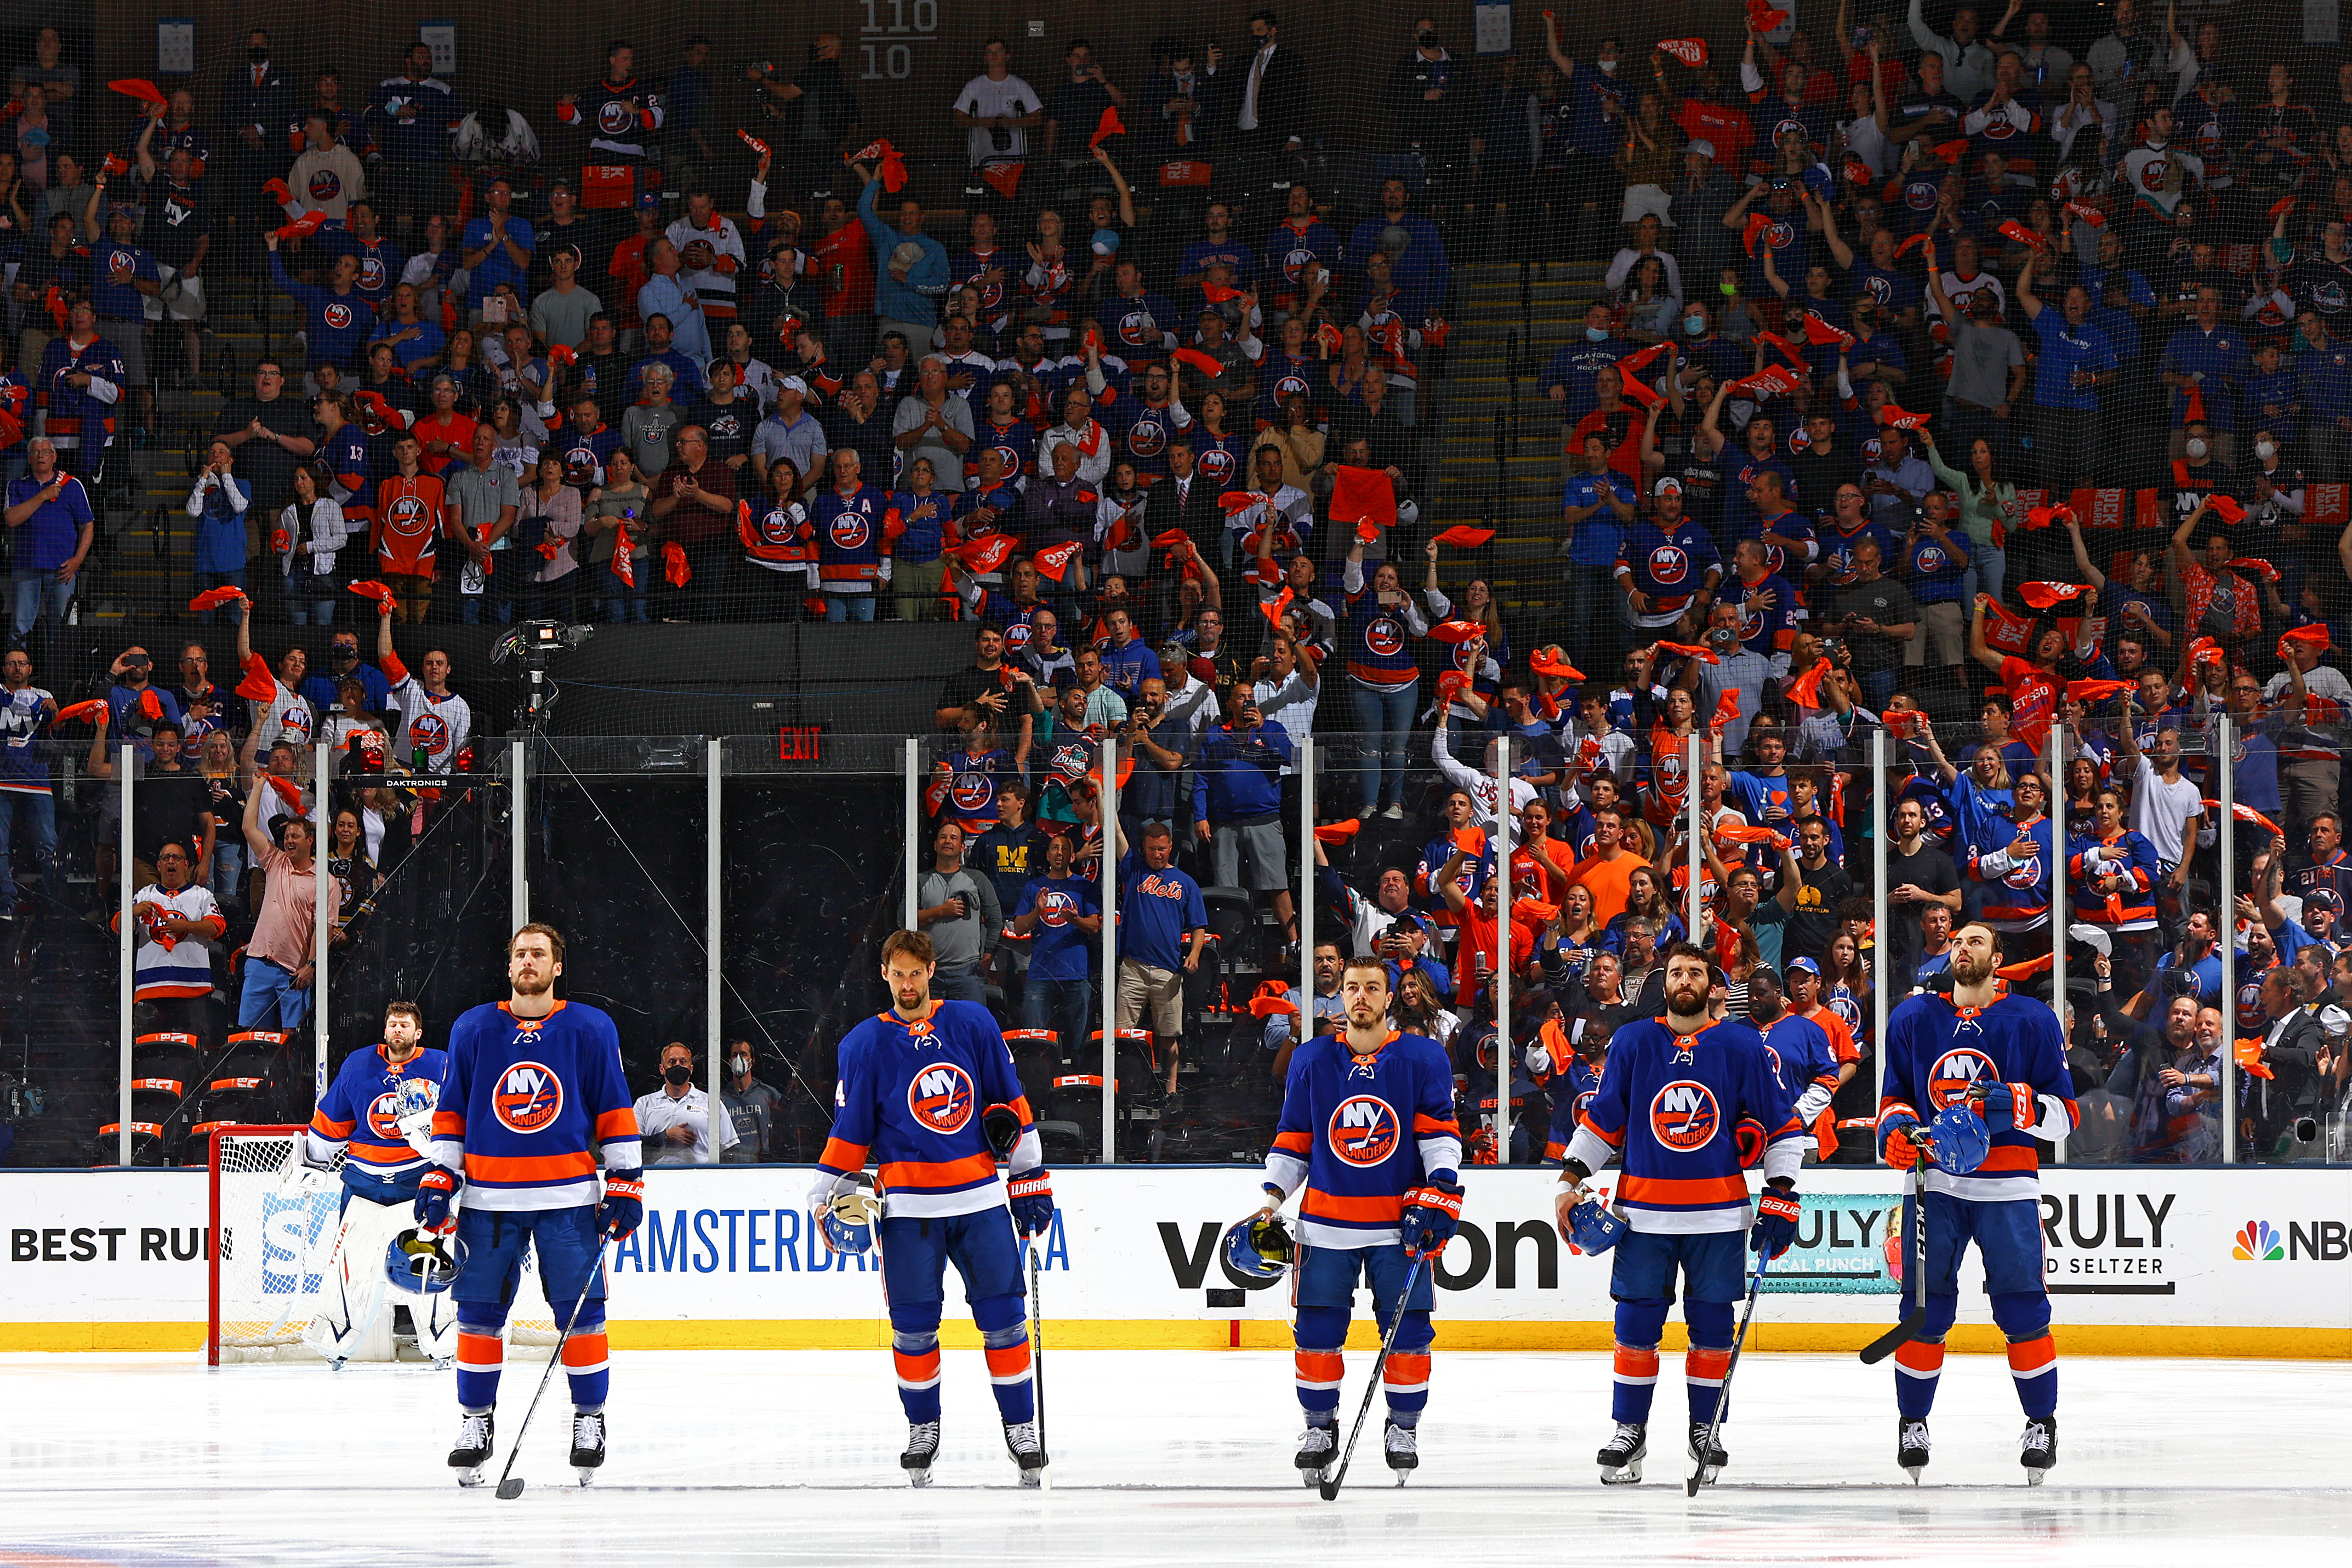 <p>Islanders Eliminate Bruins in Game 6, Will Face Lightning in Stanley Cup Semifinals thumbnail